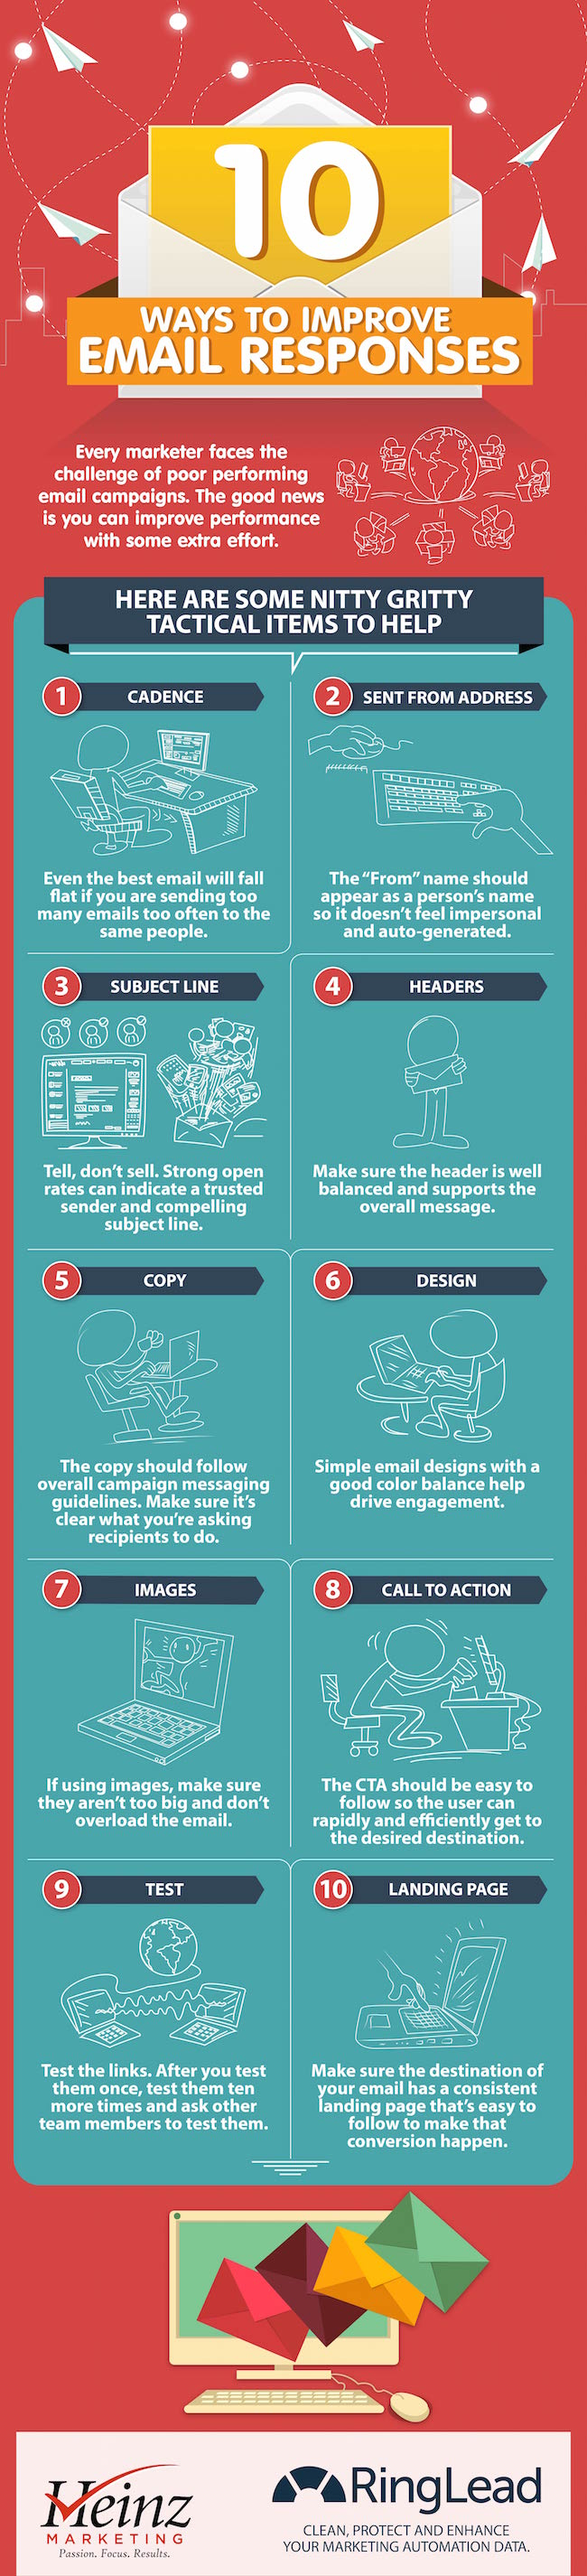 email response infographic